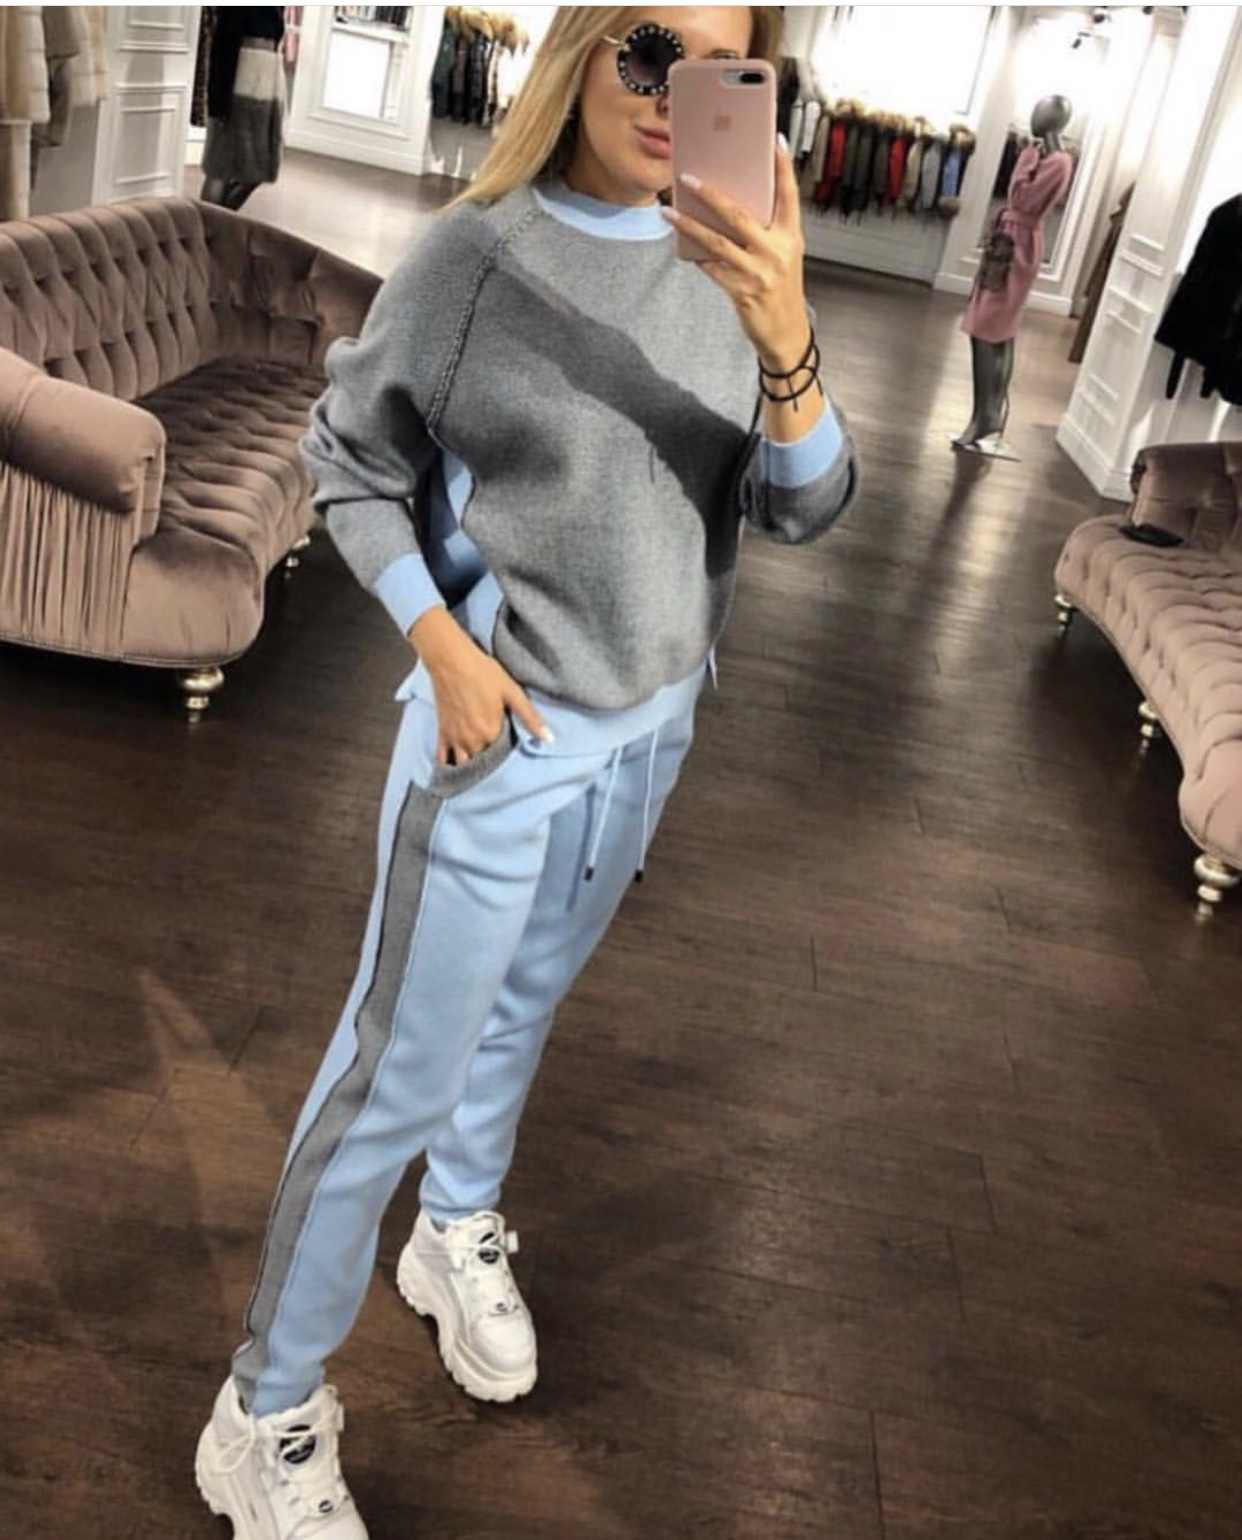 2019 Women's Knit tracksuits women two piece set Fashion Loose Sweater Feet Pants Two-piece Sportsuit 2 piece outfits for women